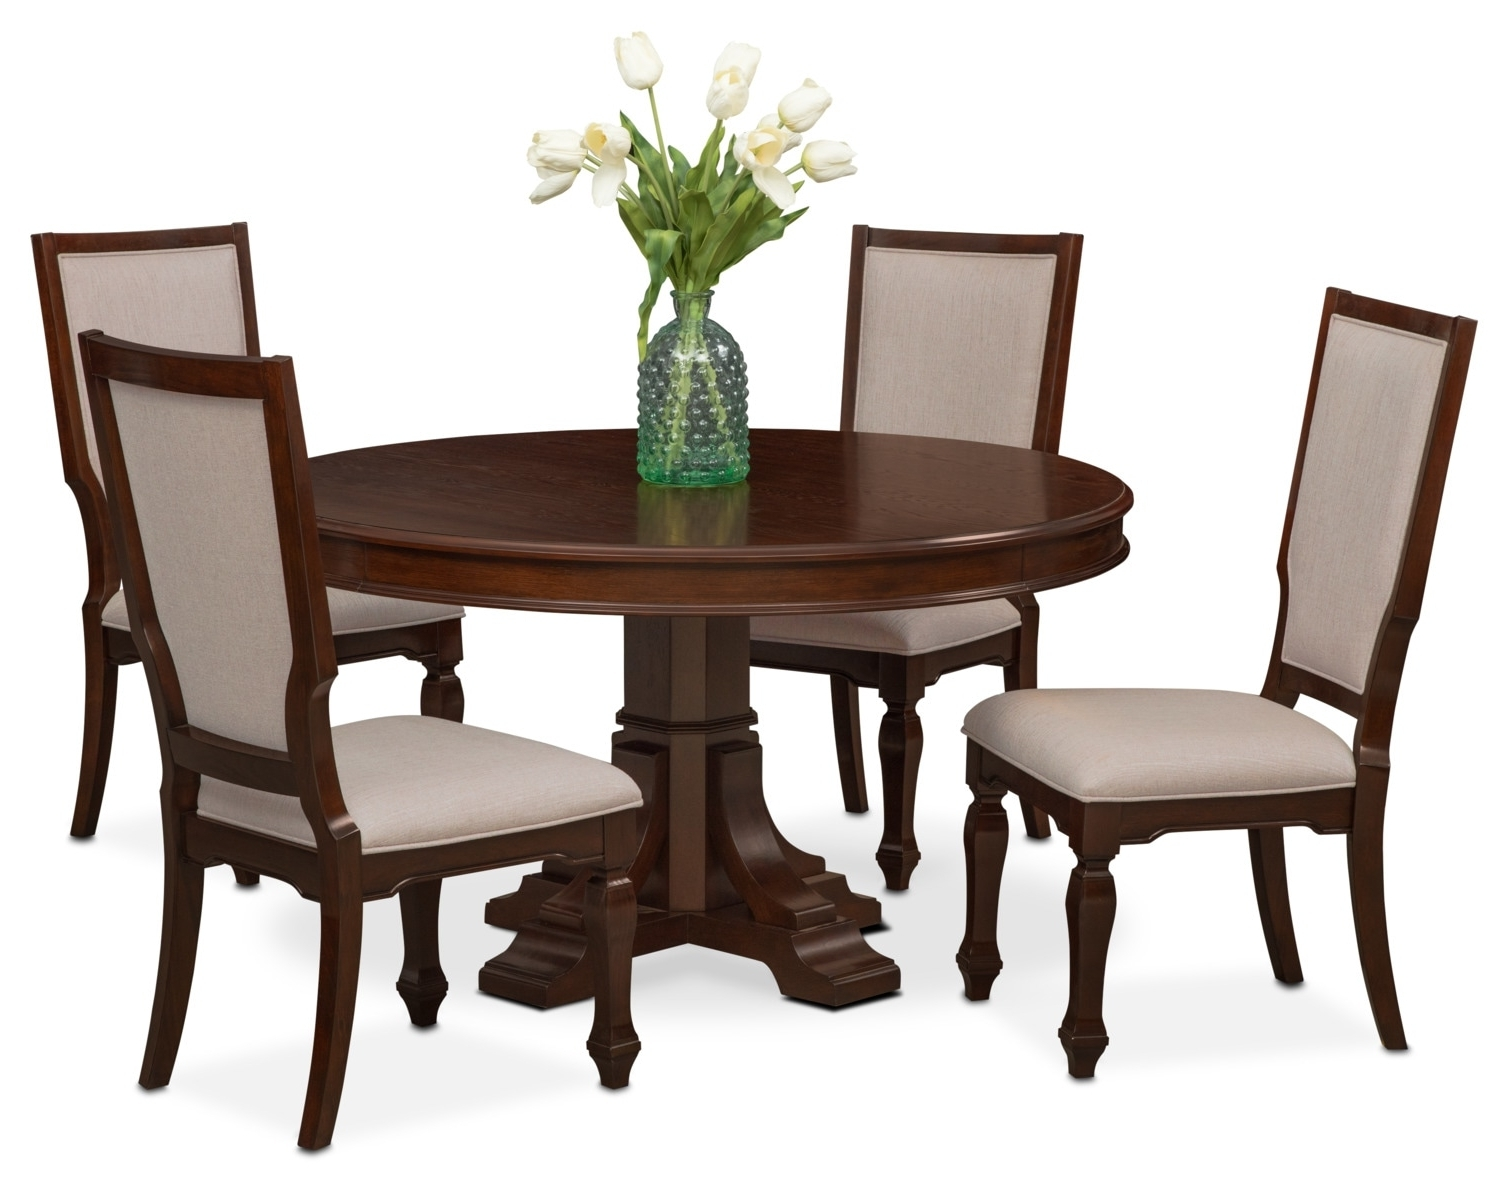 Vienna Round Dining Table And 4 Upholstered Side Chairs – Merlot For Preferred Vienna Dining Tables (View 5 of 25)